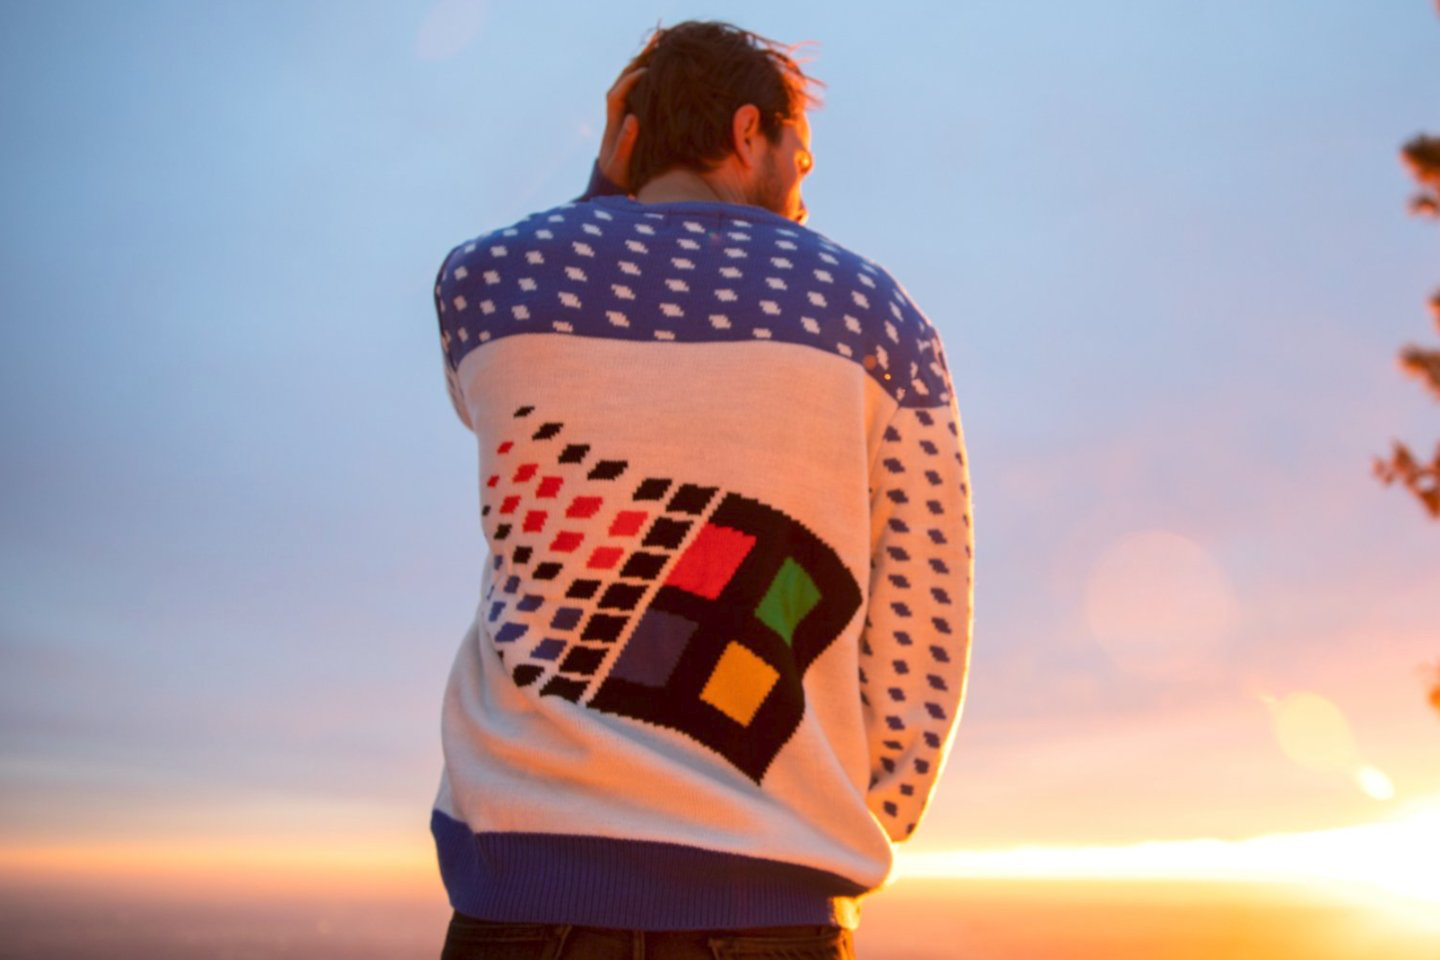 Microsoft released the ugly sweater with the logo of Windows 95 that is very difficult to obtain